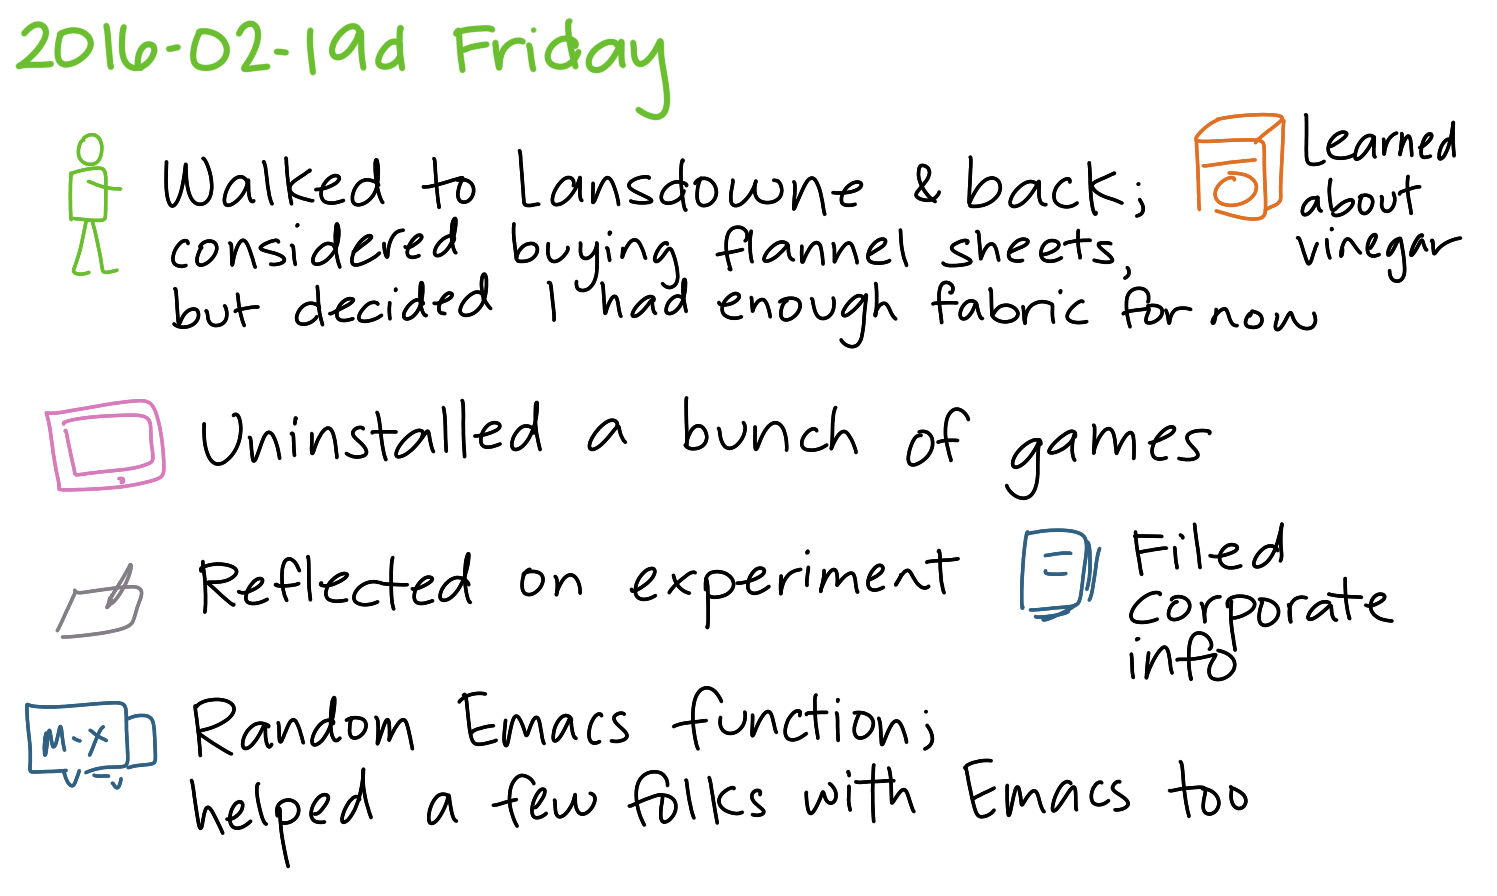 2016-02-19d Friday -- index card #journal.png